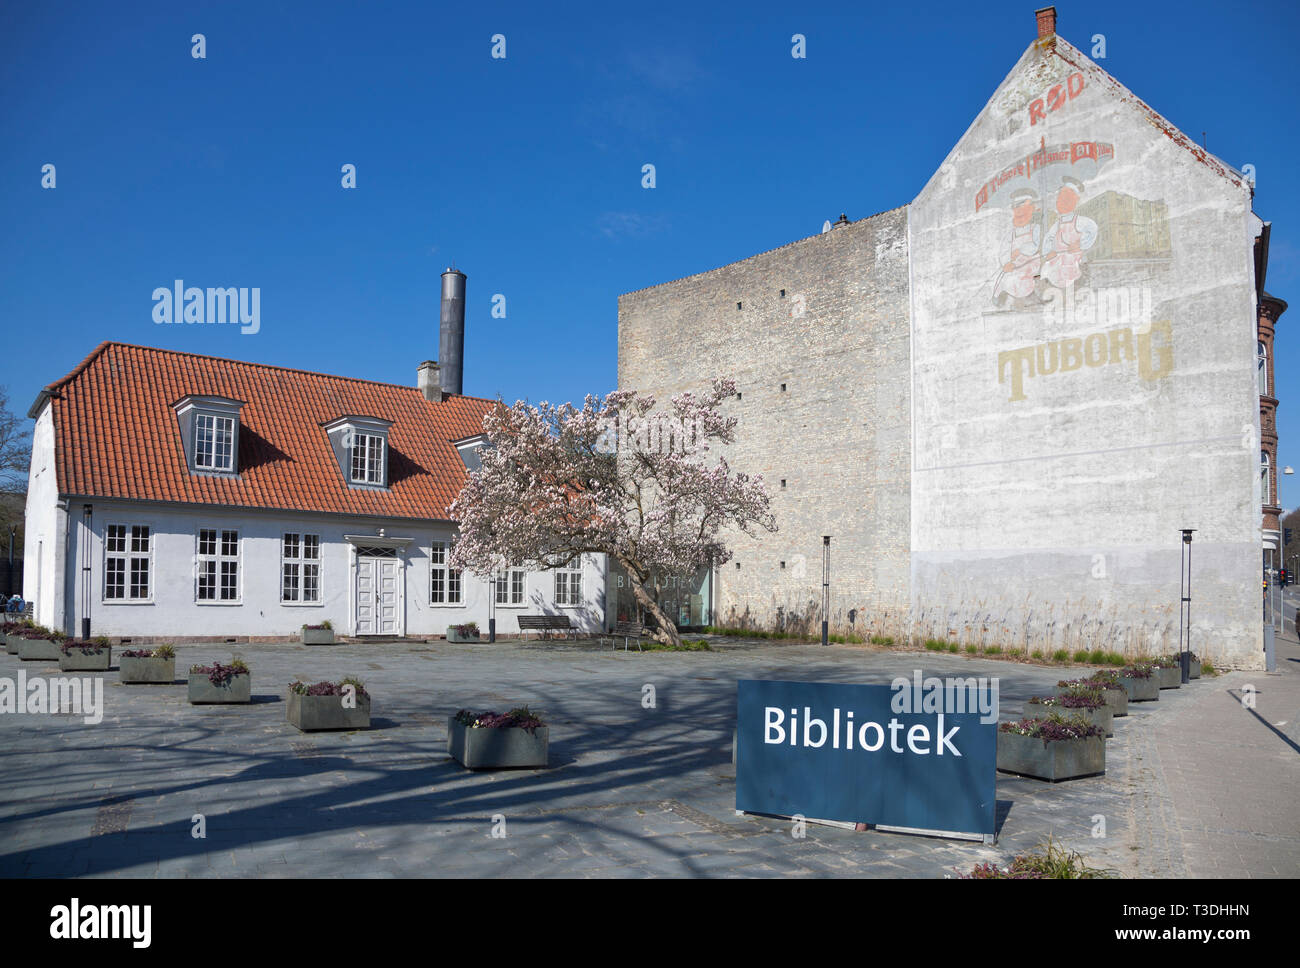 Blooming magnolia tree in front of Lyngby Library and Library Cafe building. Old, faint Red Tuborg beer advert on the wall of neighbouring building. Stock Photo